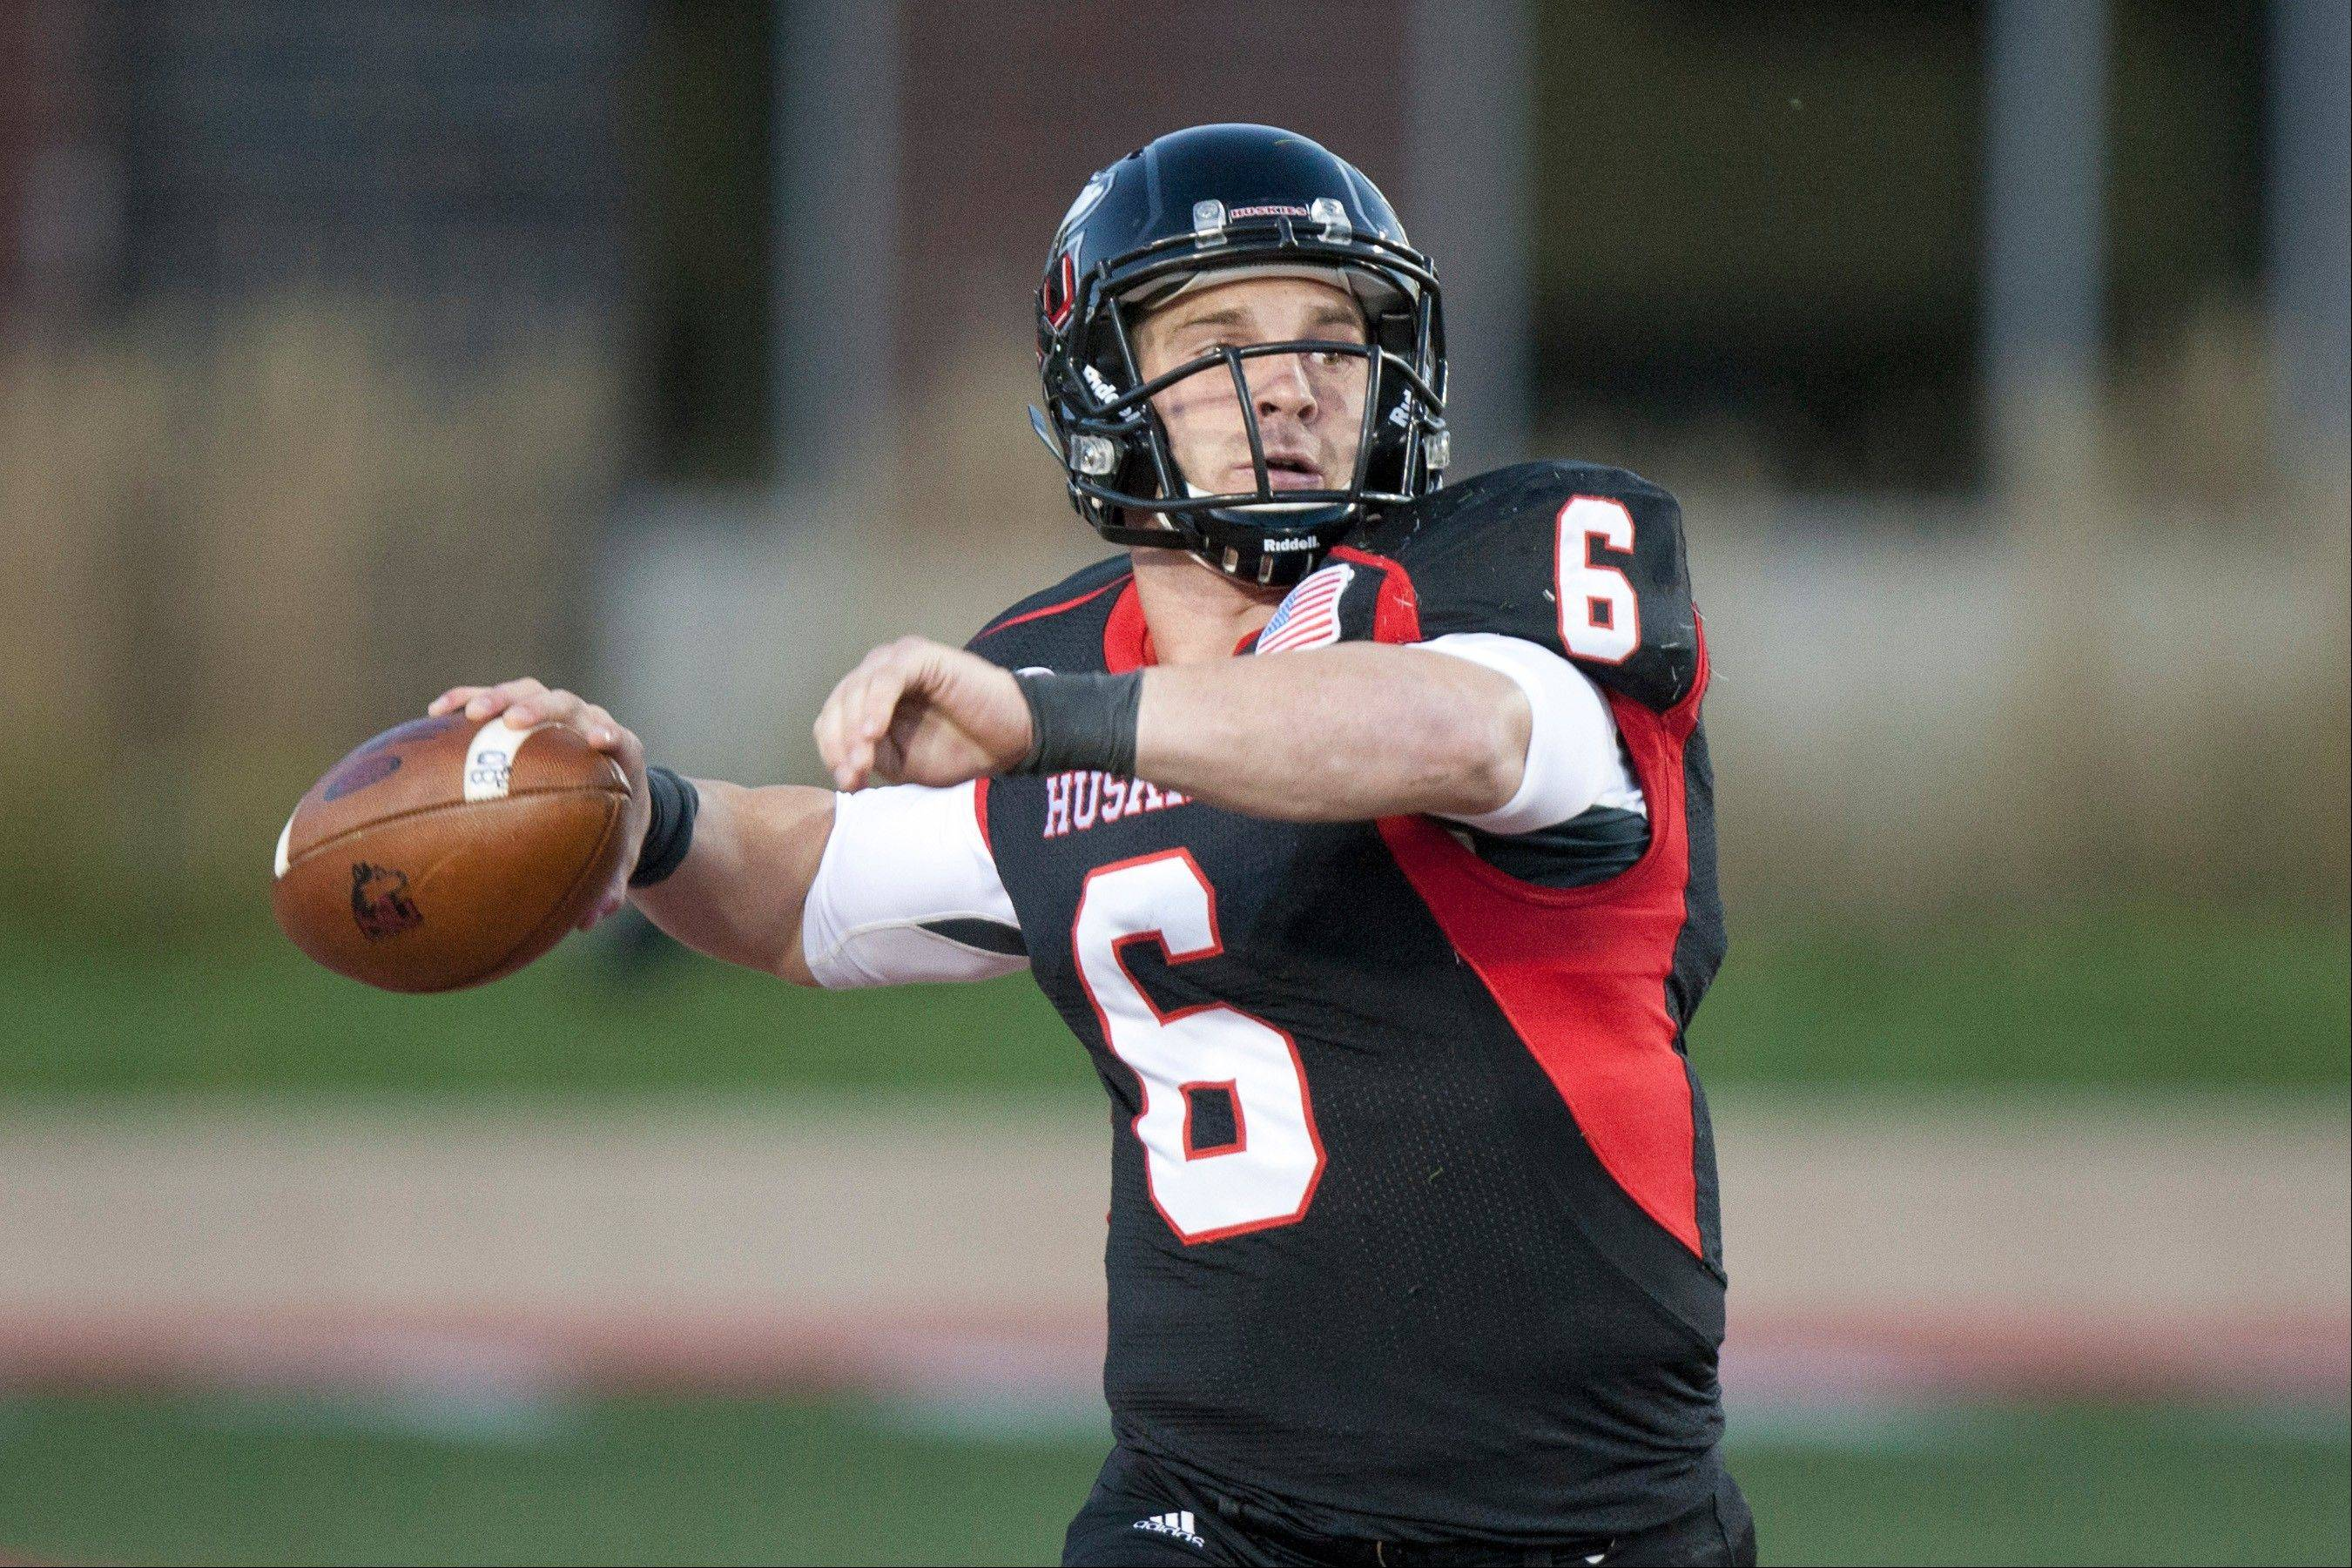 Northern Illinois quarterback Jordan Lynch will try to lead his Huskies to a second win over a Big Ten opponent this season when NIU plays at Purdue on Saturday.